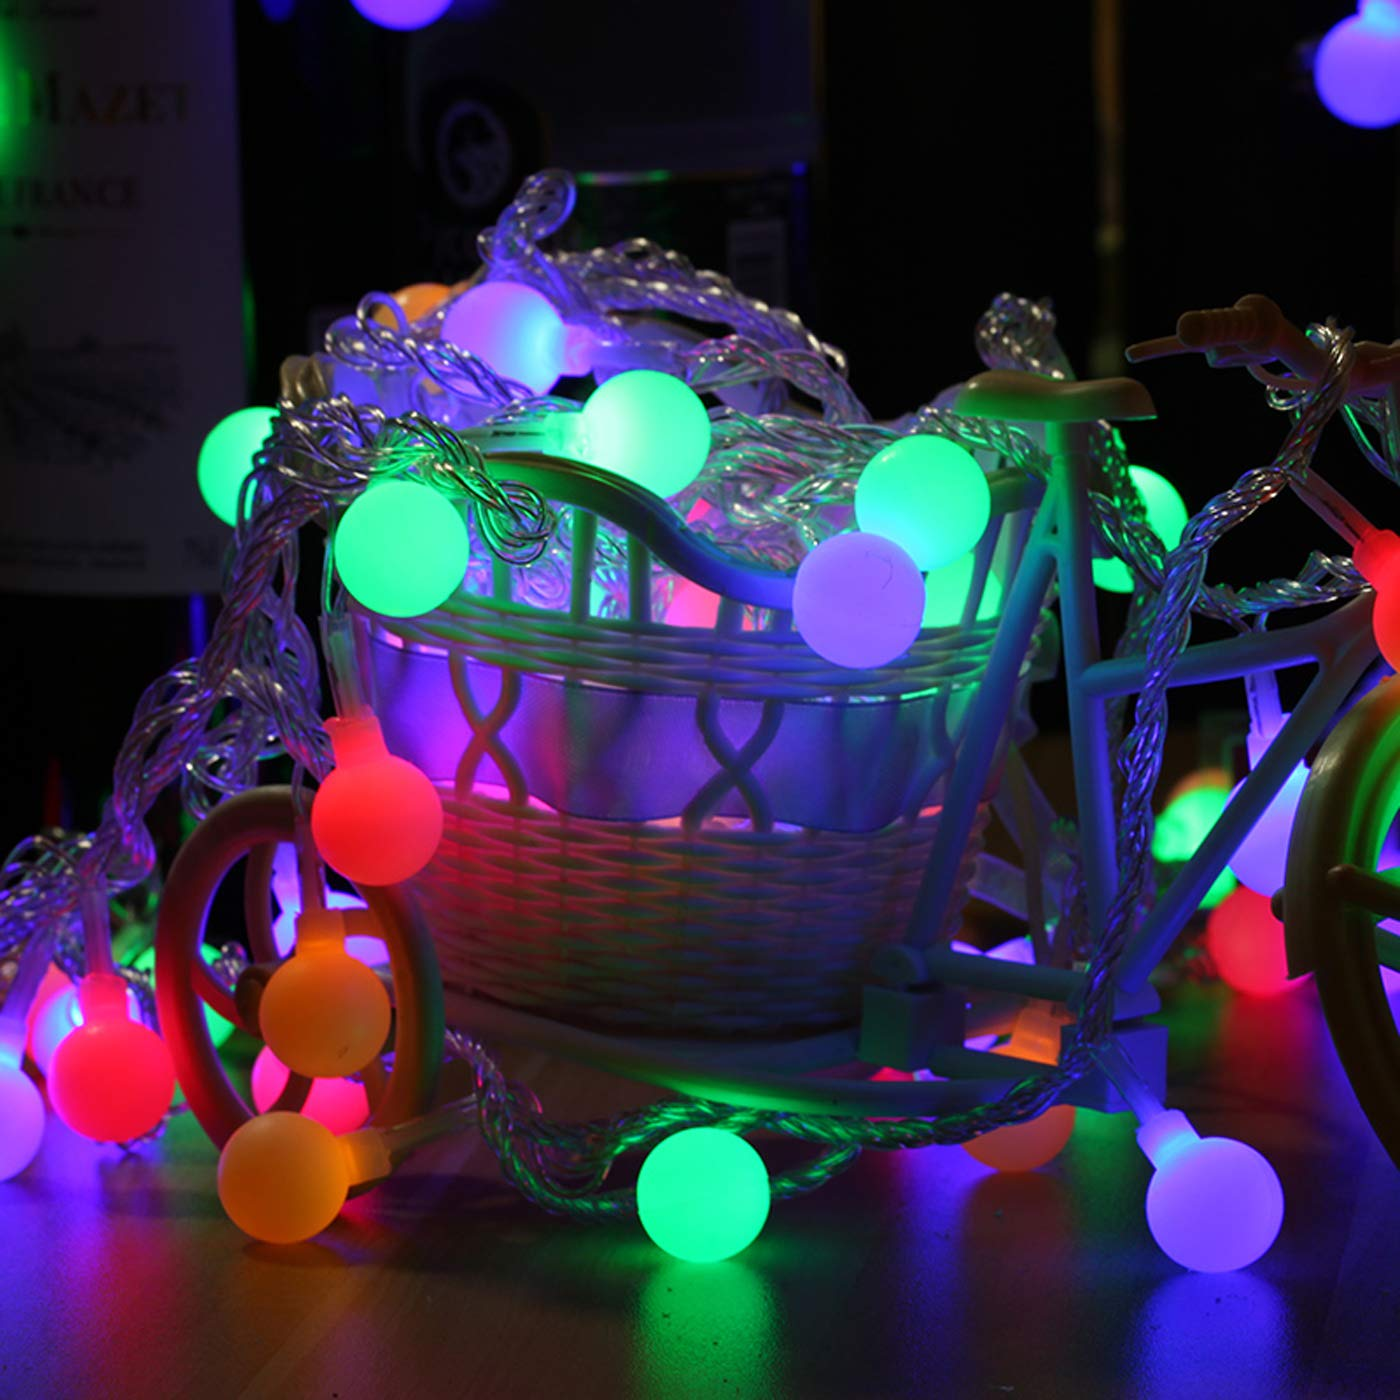 TOYYM Globe String Lights,100 LED 33ft/10m Waterproof Decorative String Lights Outdoor,Decorative Timer Fairy Lights for Garden,Wedding,Christmas,Indoor and Outdoor,Coloful